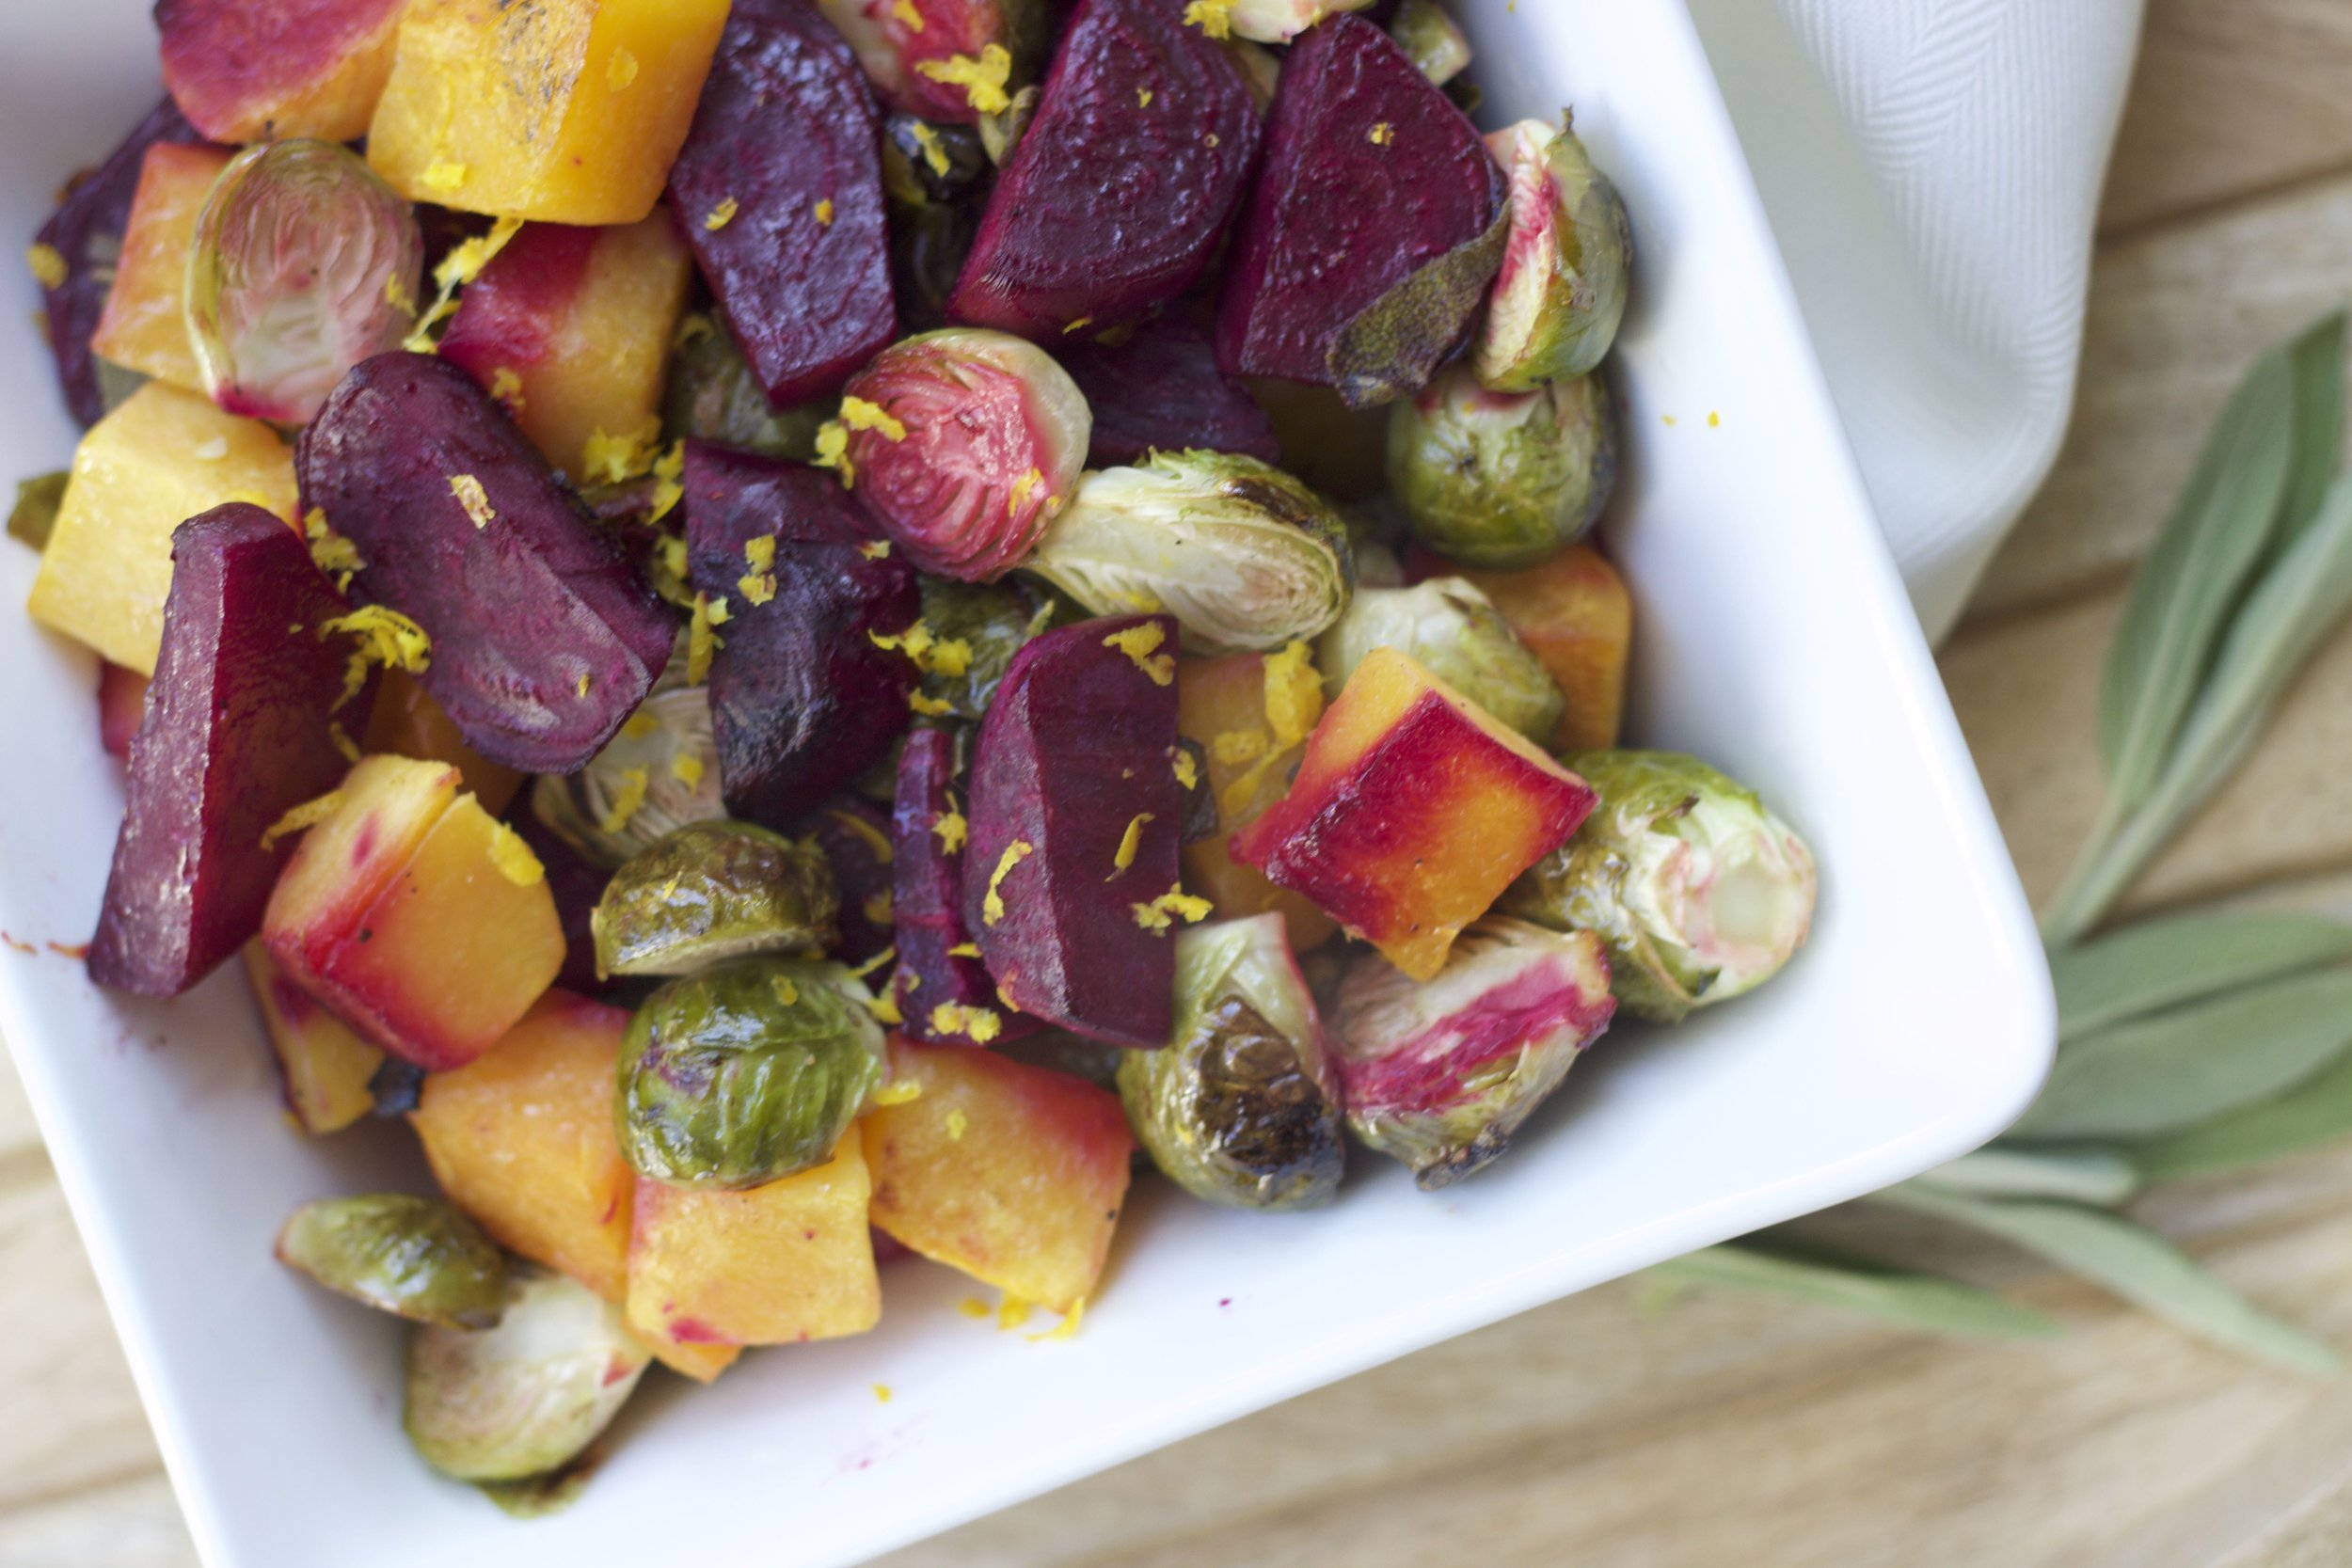 This bright vegetable melody recipe is included in your guide.